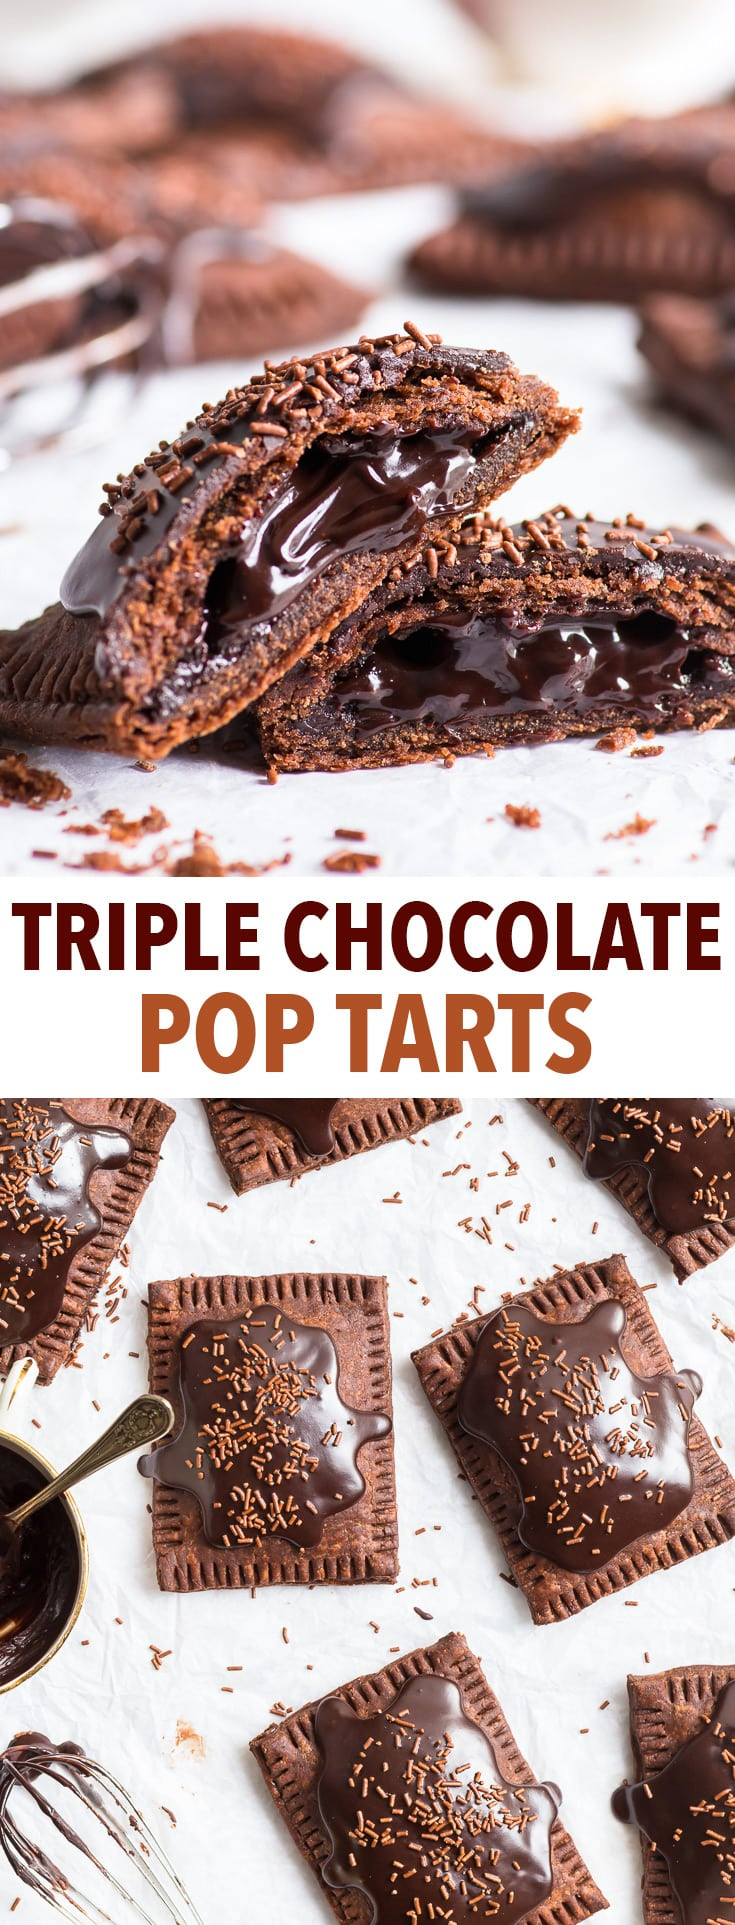 Triple Chocolate Pop Tarts (Gluten Free) - Imagine the most chocolatey dessert you can… and then multiply it by a hundred. What you get is these triple chocolate gluten free pop tarts. With a delicious chocolate gluten free pie dough, a chocolate fudge centre and a chocolate frosting. Gluten free pie crust recipe. Chocolate dessert recipe. Gluten free desserts. Gluten free recipes. Homemade pop tarts. Pop tart flavours. #poptart #poptarts #glutenfree #chocolate #dessert #recipe